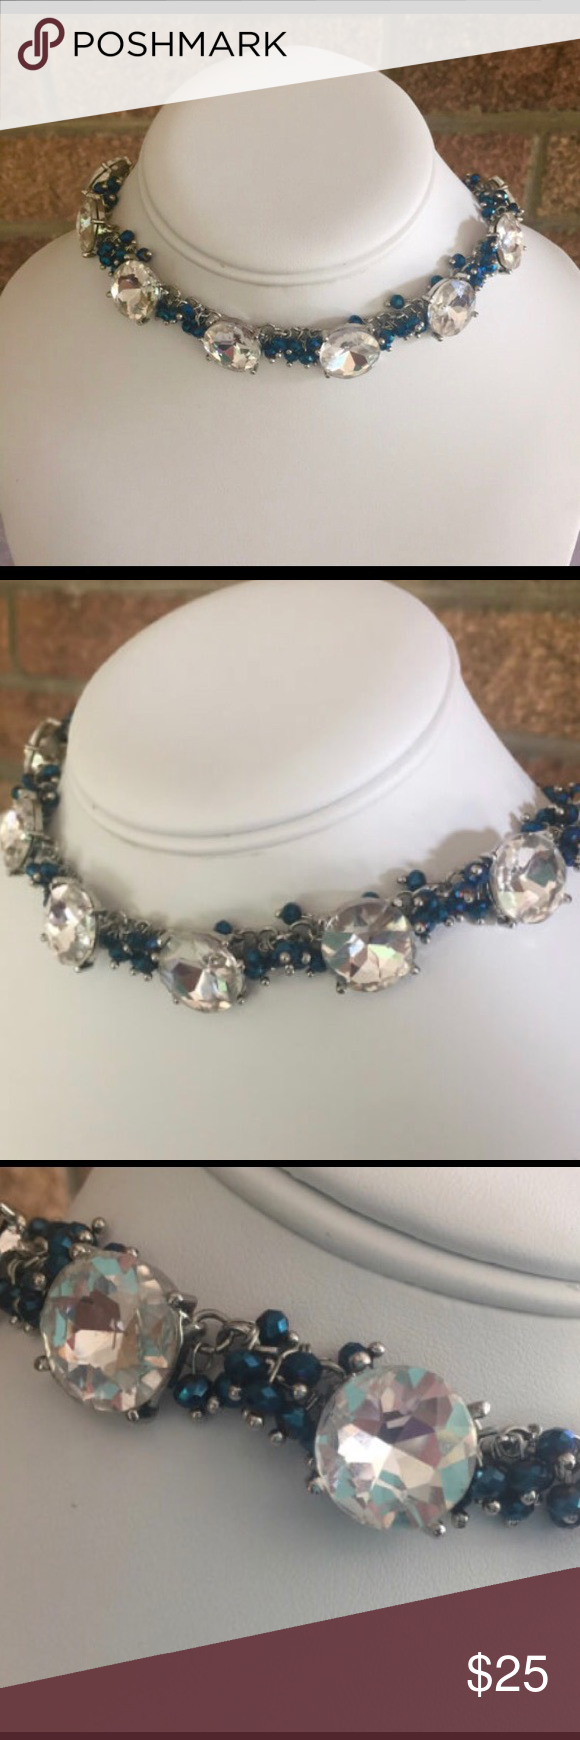 Rhinestone choker Gorgeous large white crystal rhinestones with small blue glass beads.  Total length of choker is 16 inches. Jewelry Necklaces